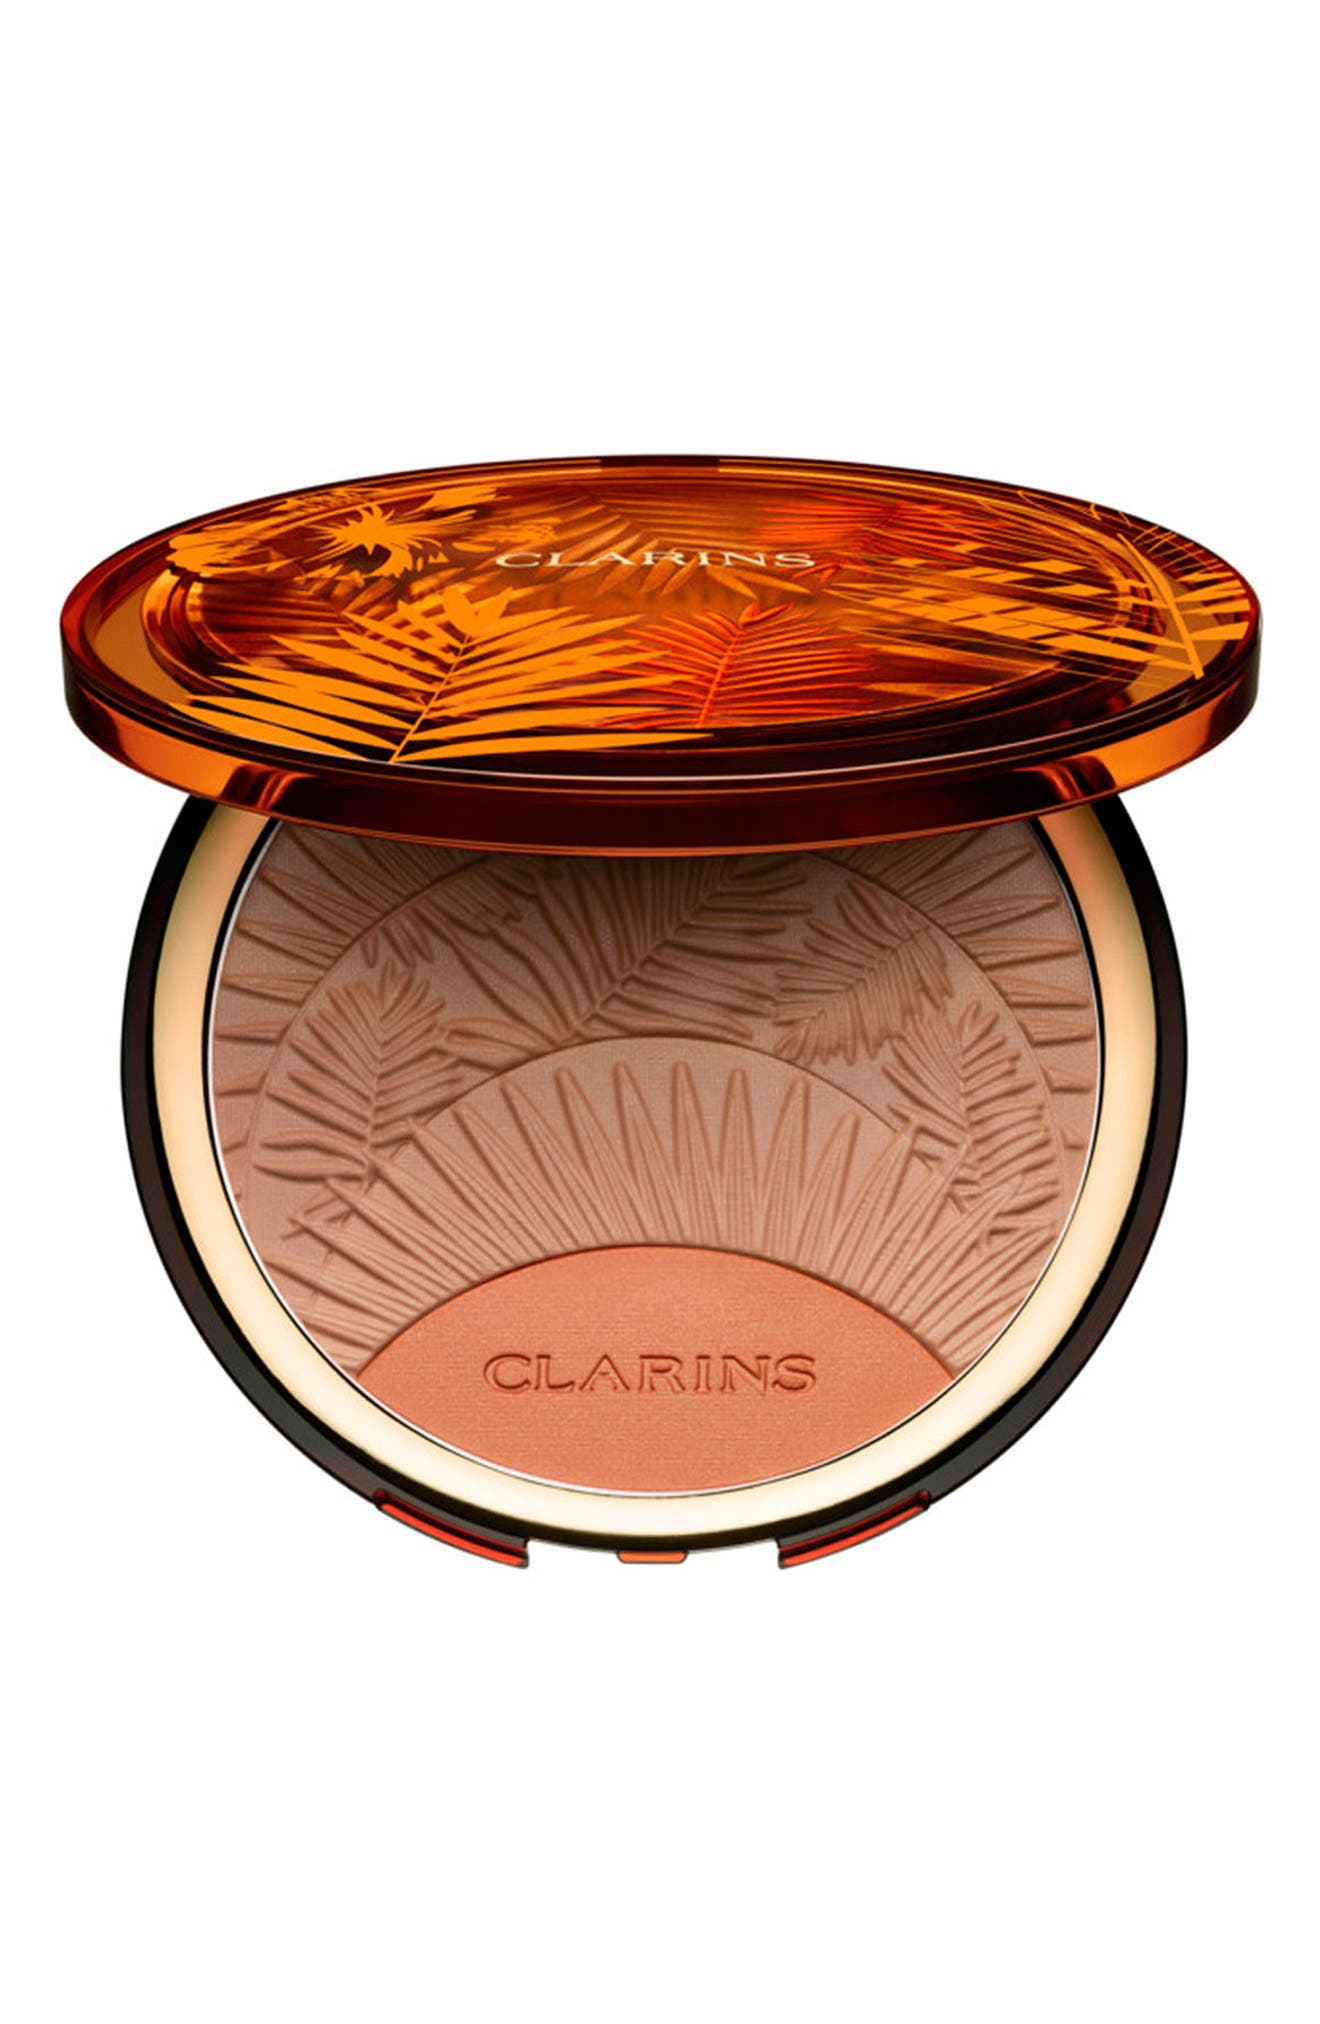 Clarins Sunkissed Bronzing & Blush Compact